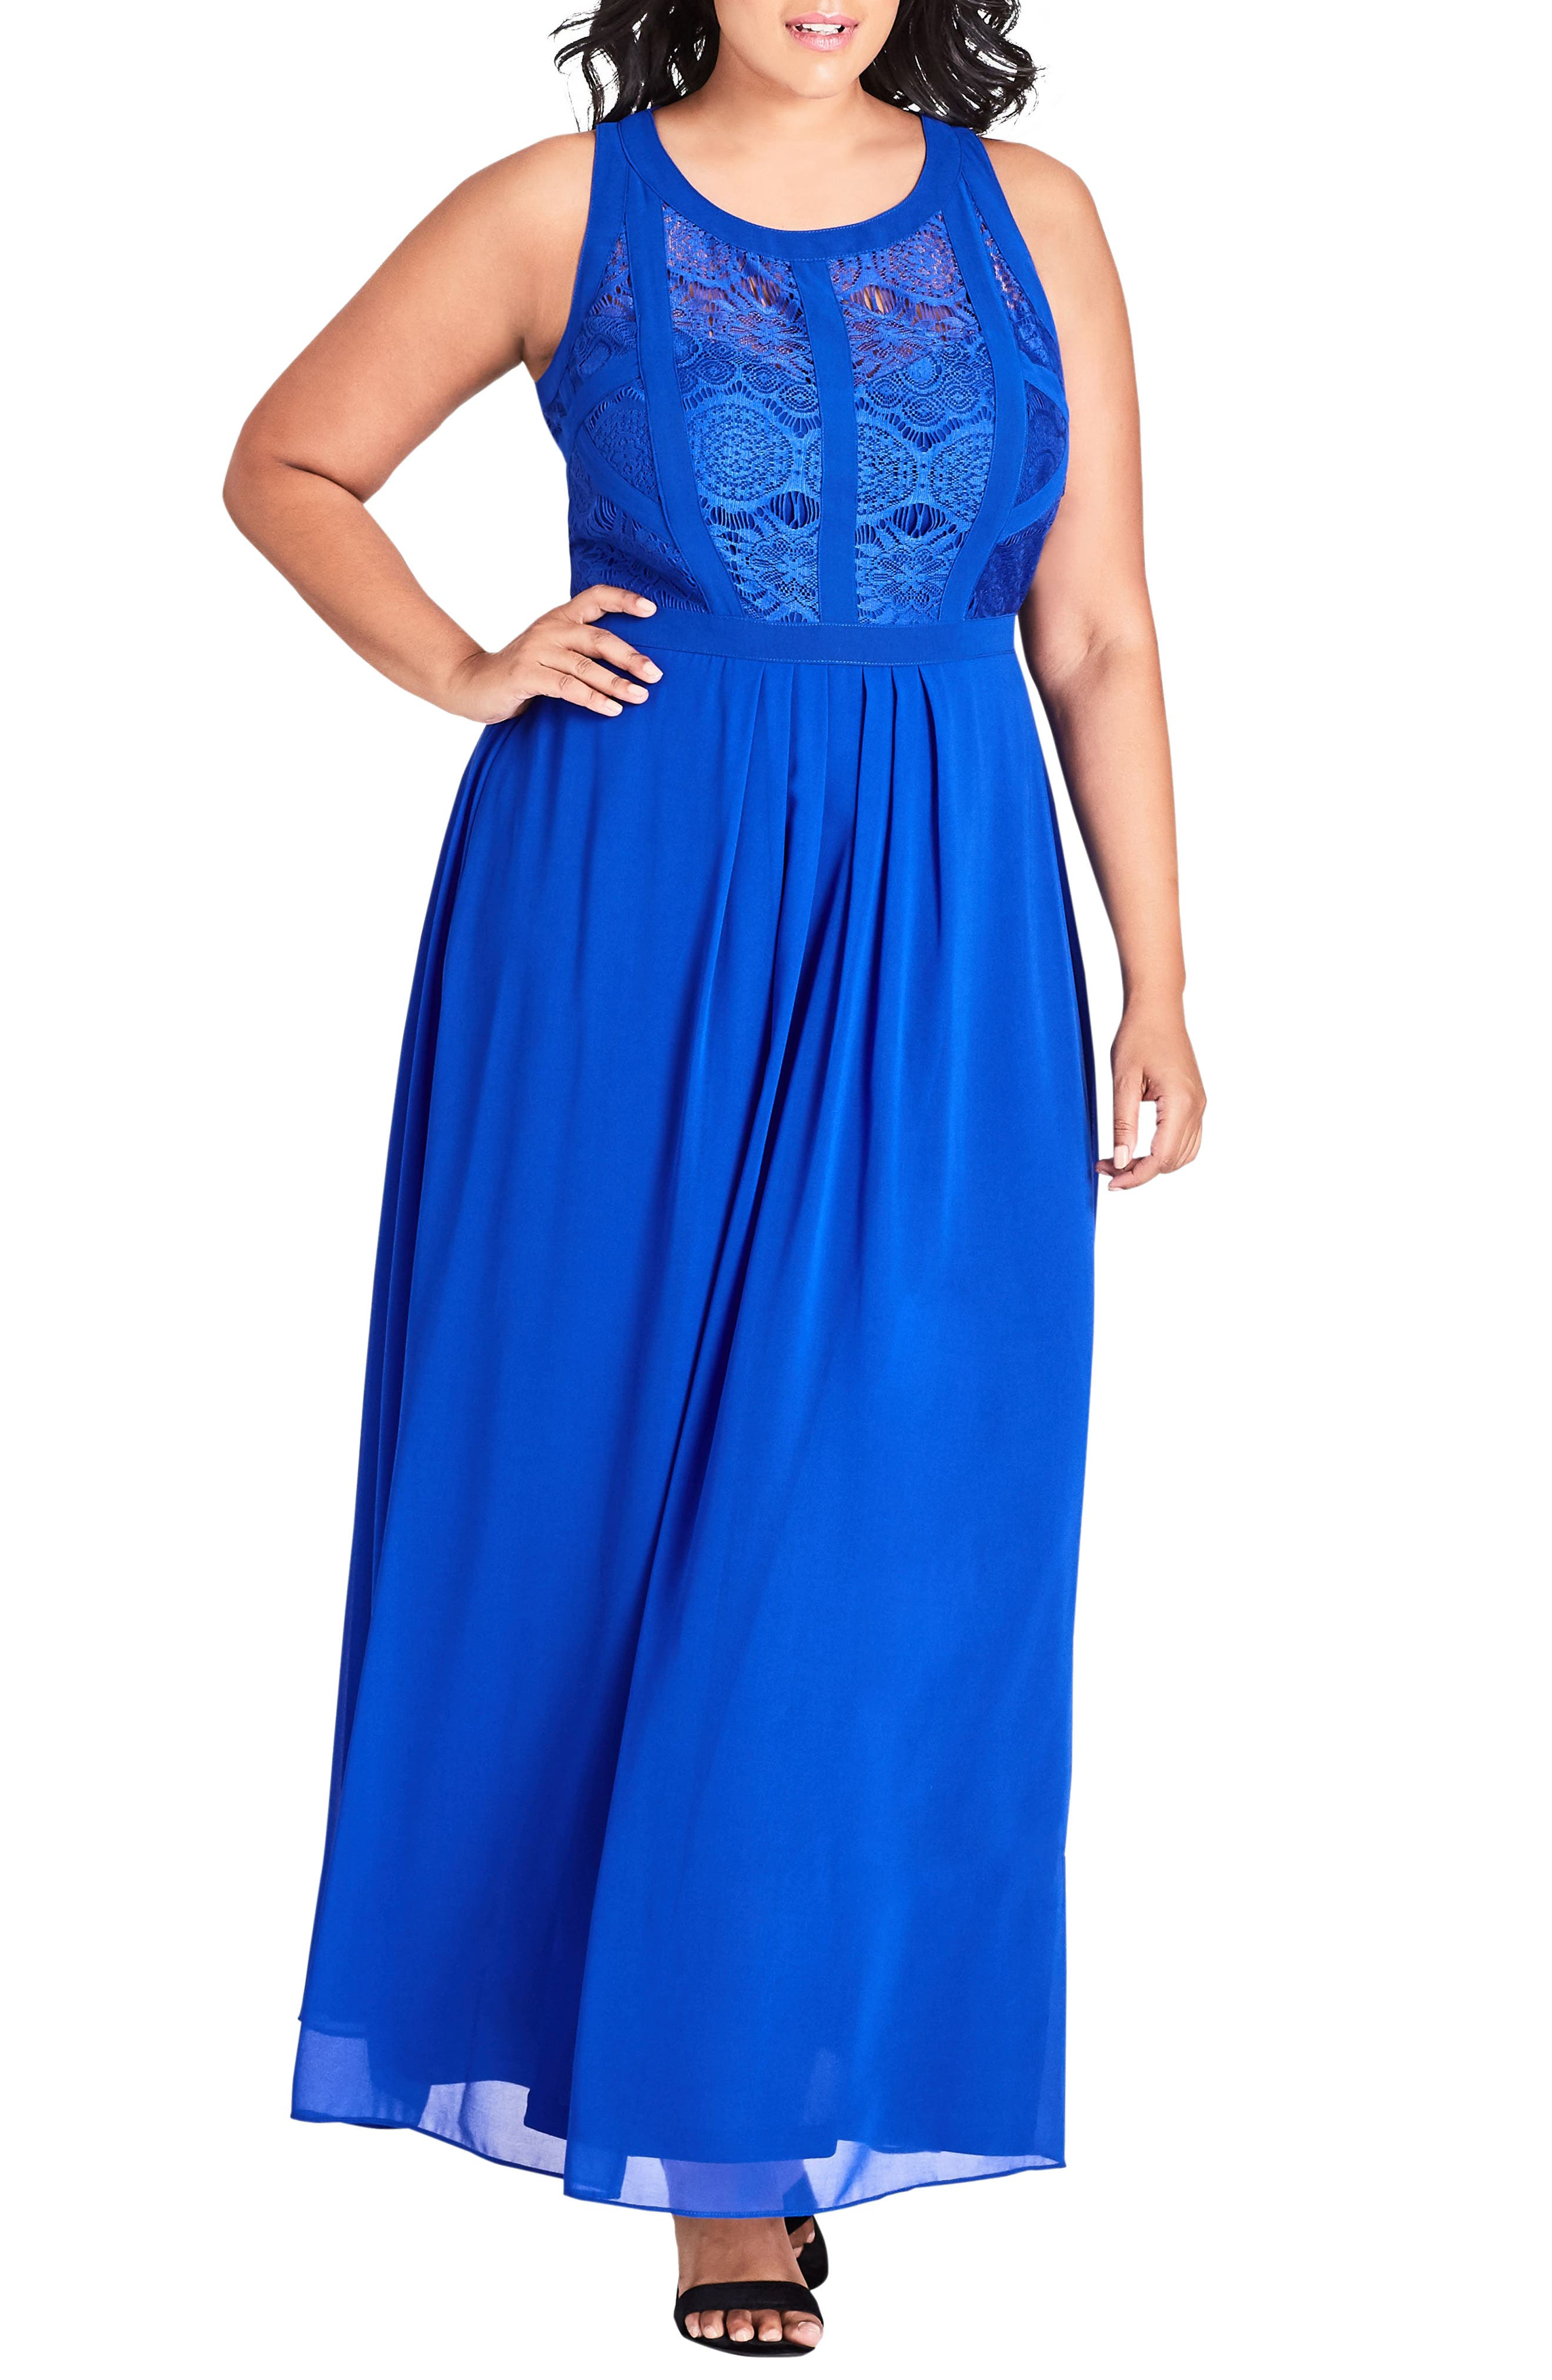 Paneled Lace Bodice Gown,                             Main thumbnail 1, color,                             422